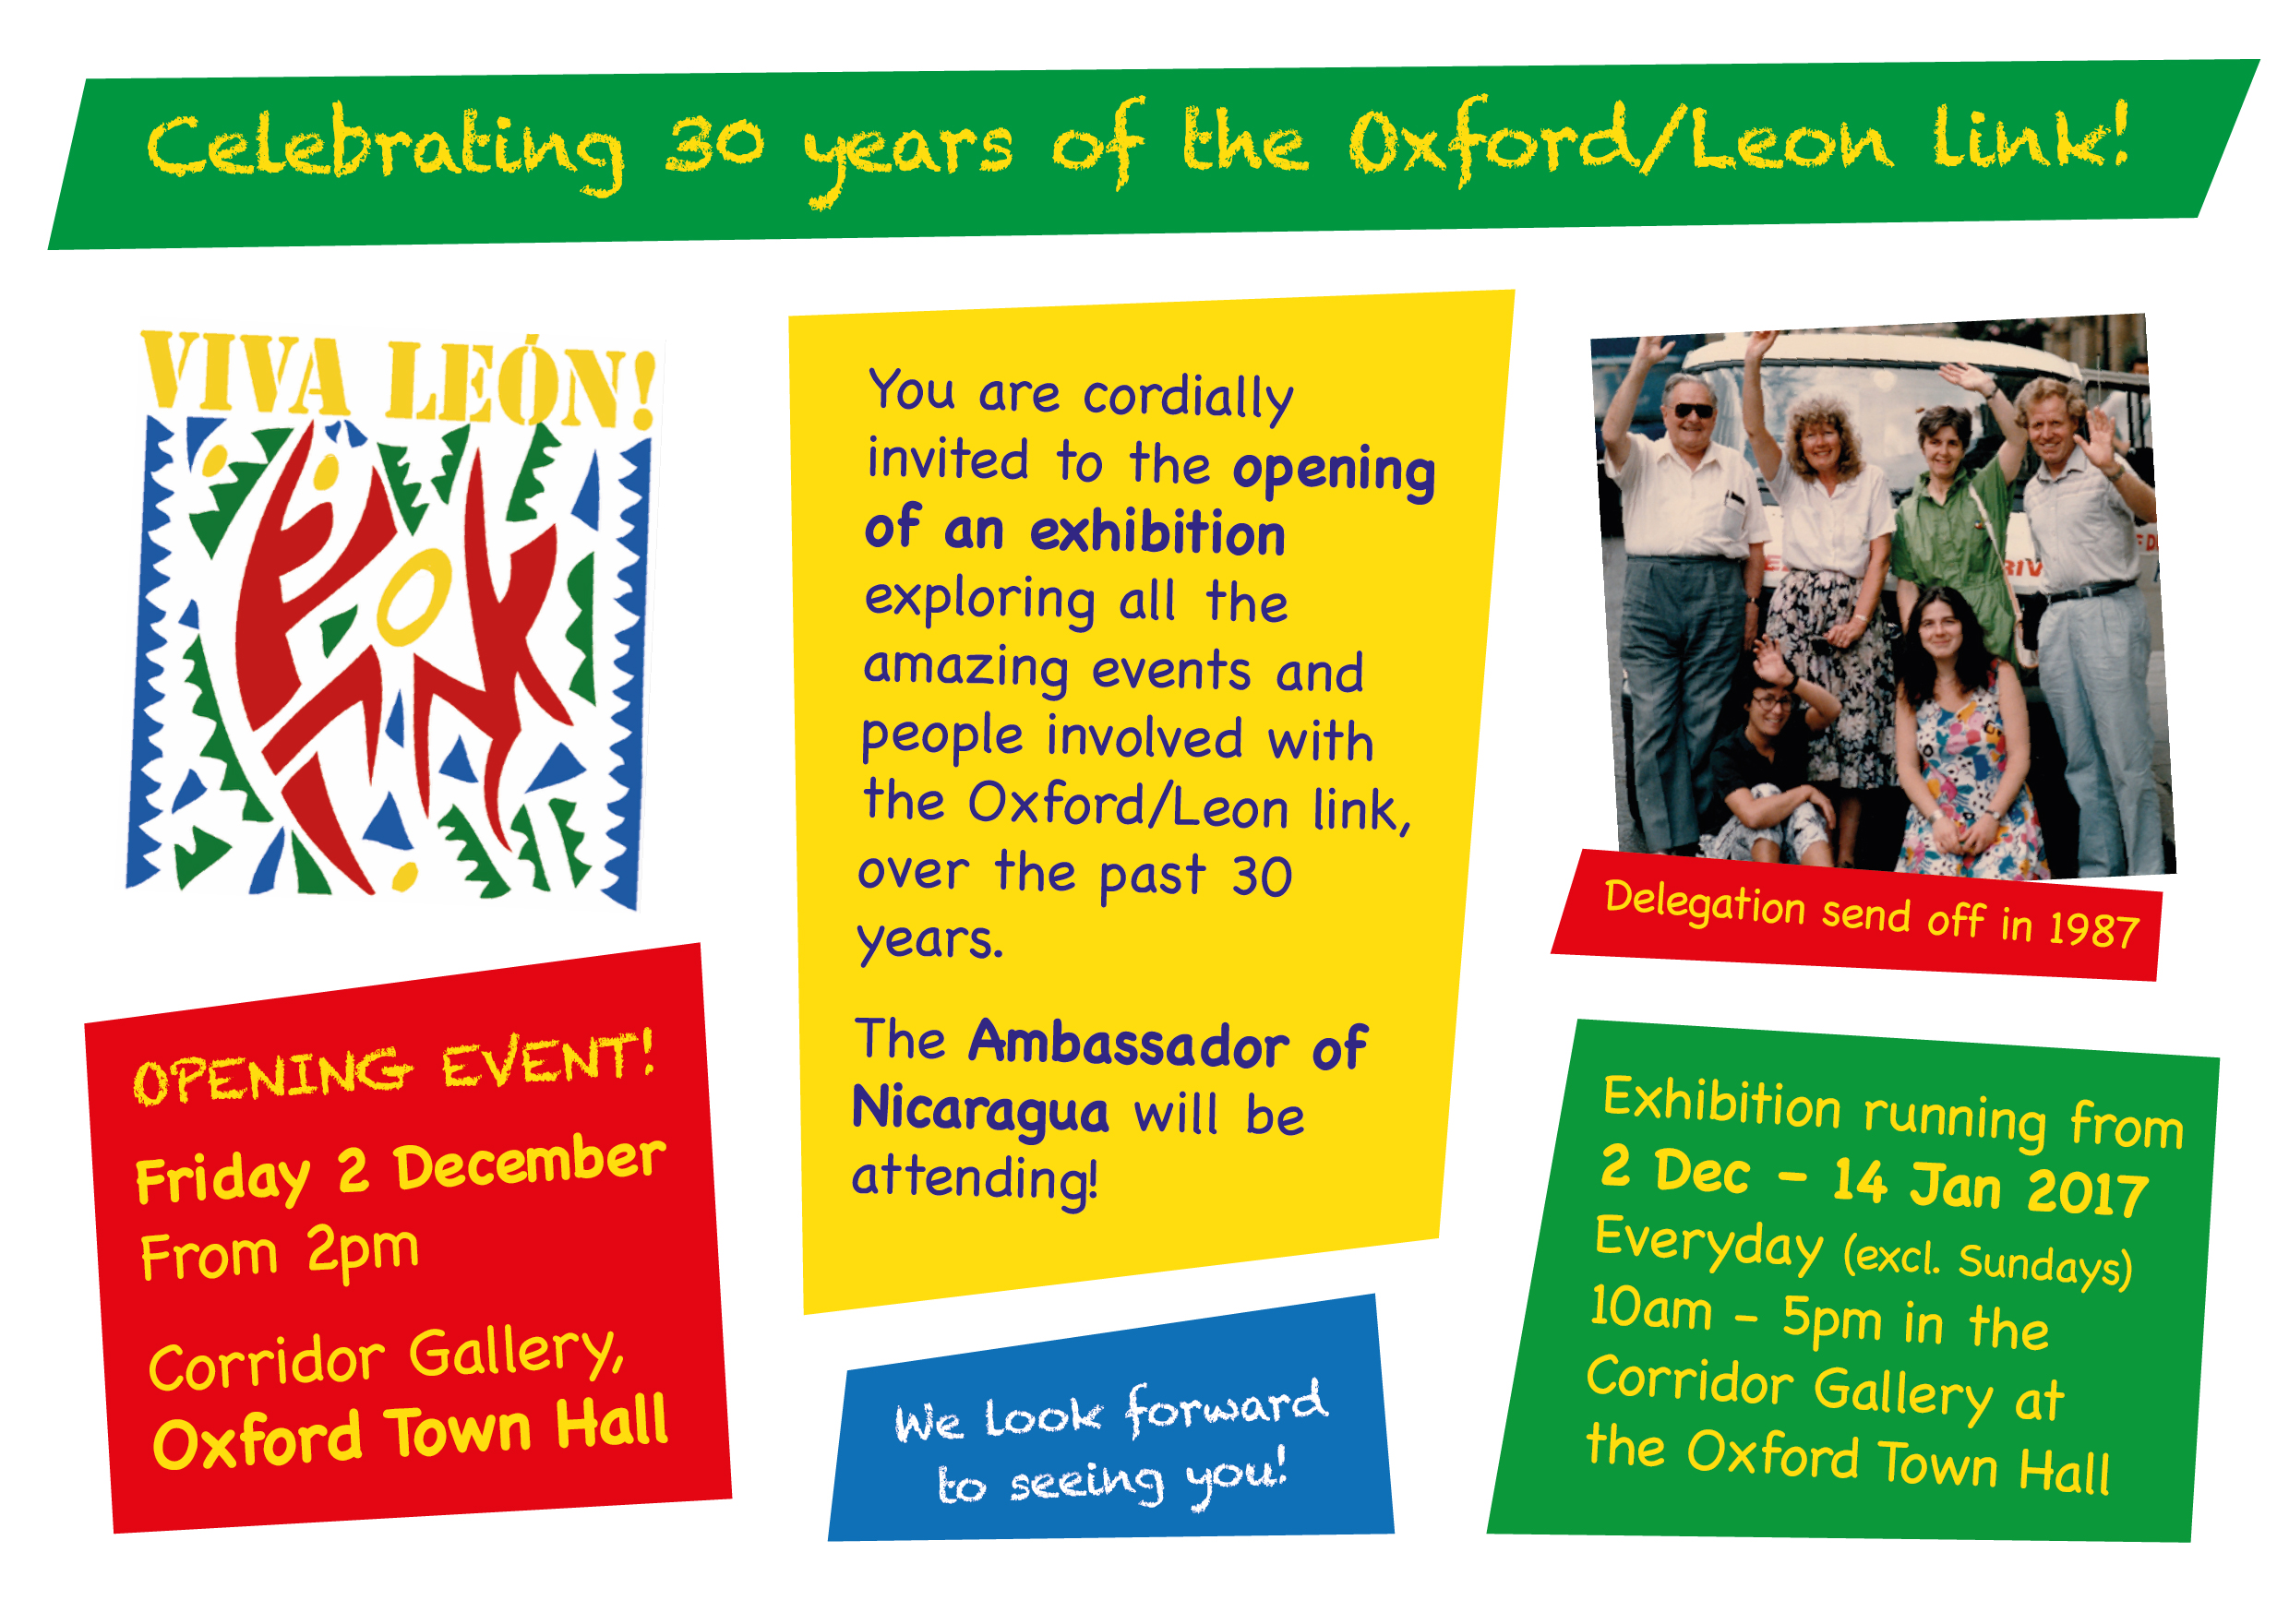 Exhibition celebrating 30 years of the Oxford Leon link - opening event on Friday 2nd of December from 2pm